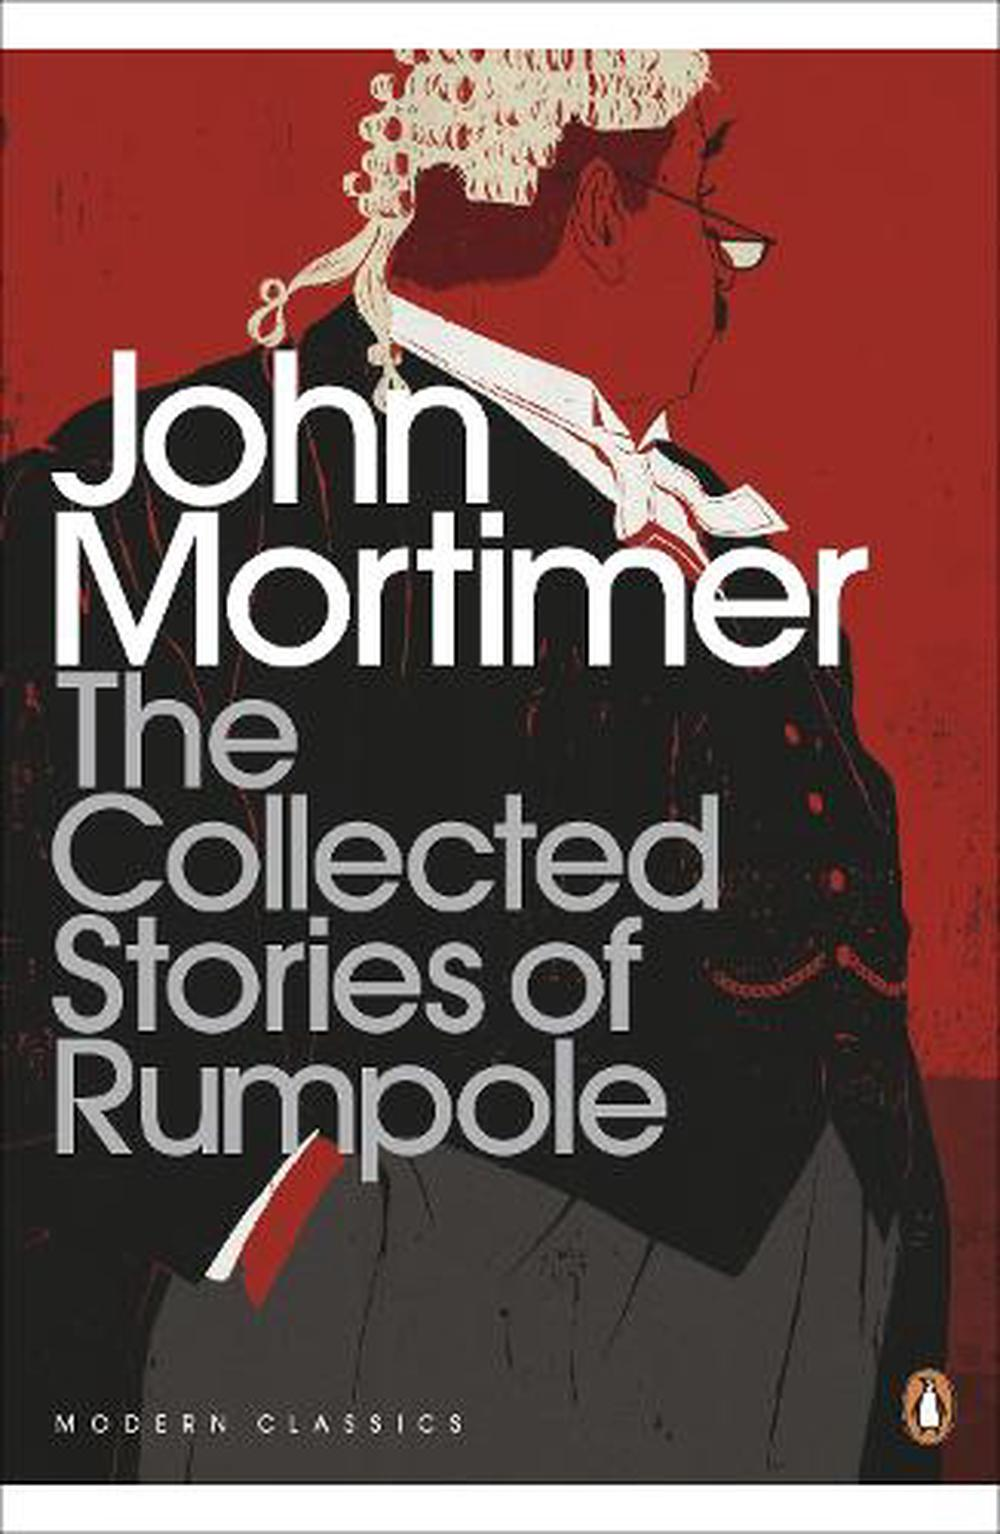 Collected Stories of Rumpole